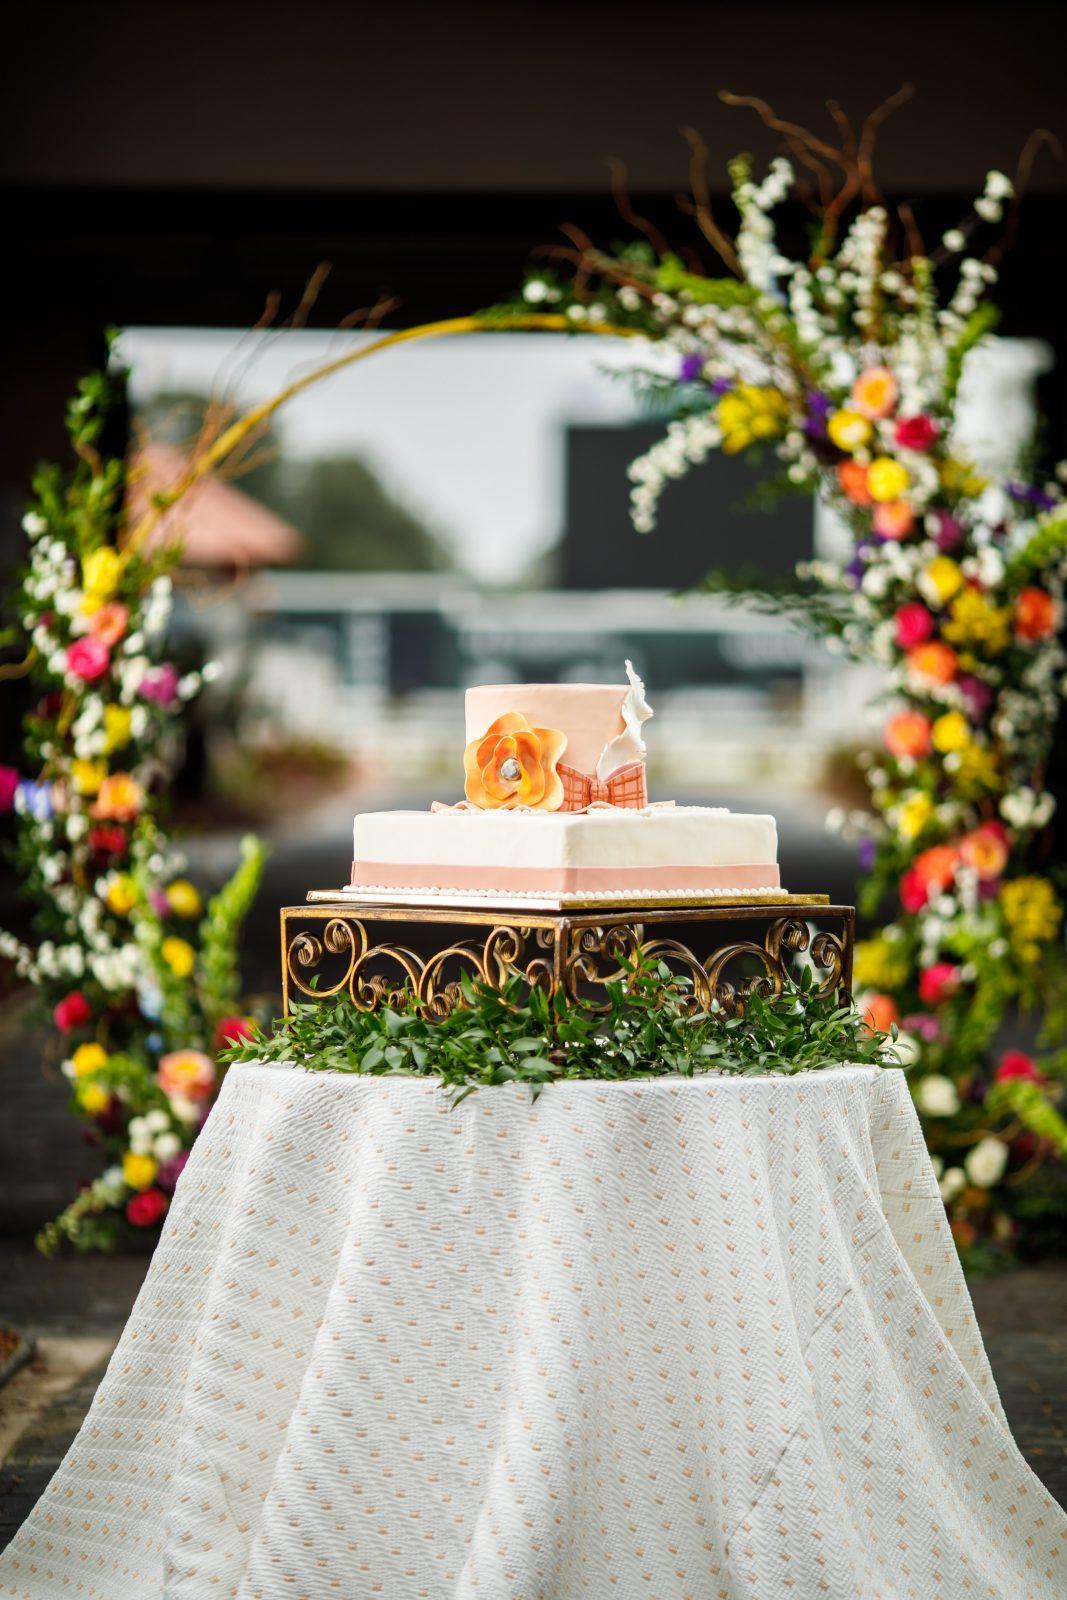 Gambino's Bakery Day at the Races cake. Photo: North Photography